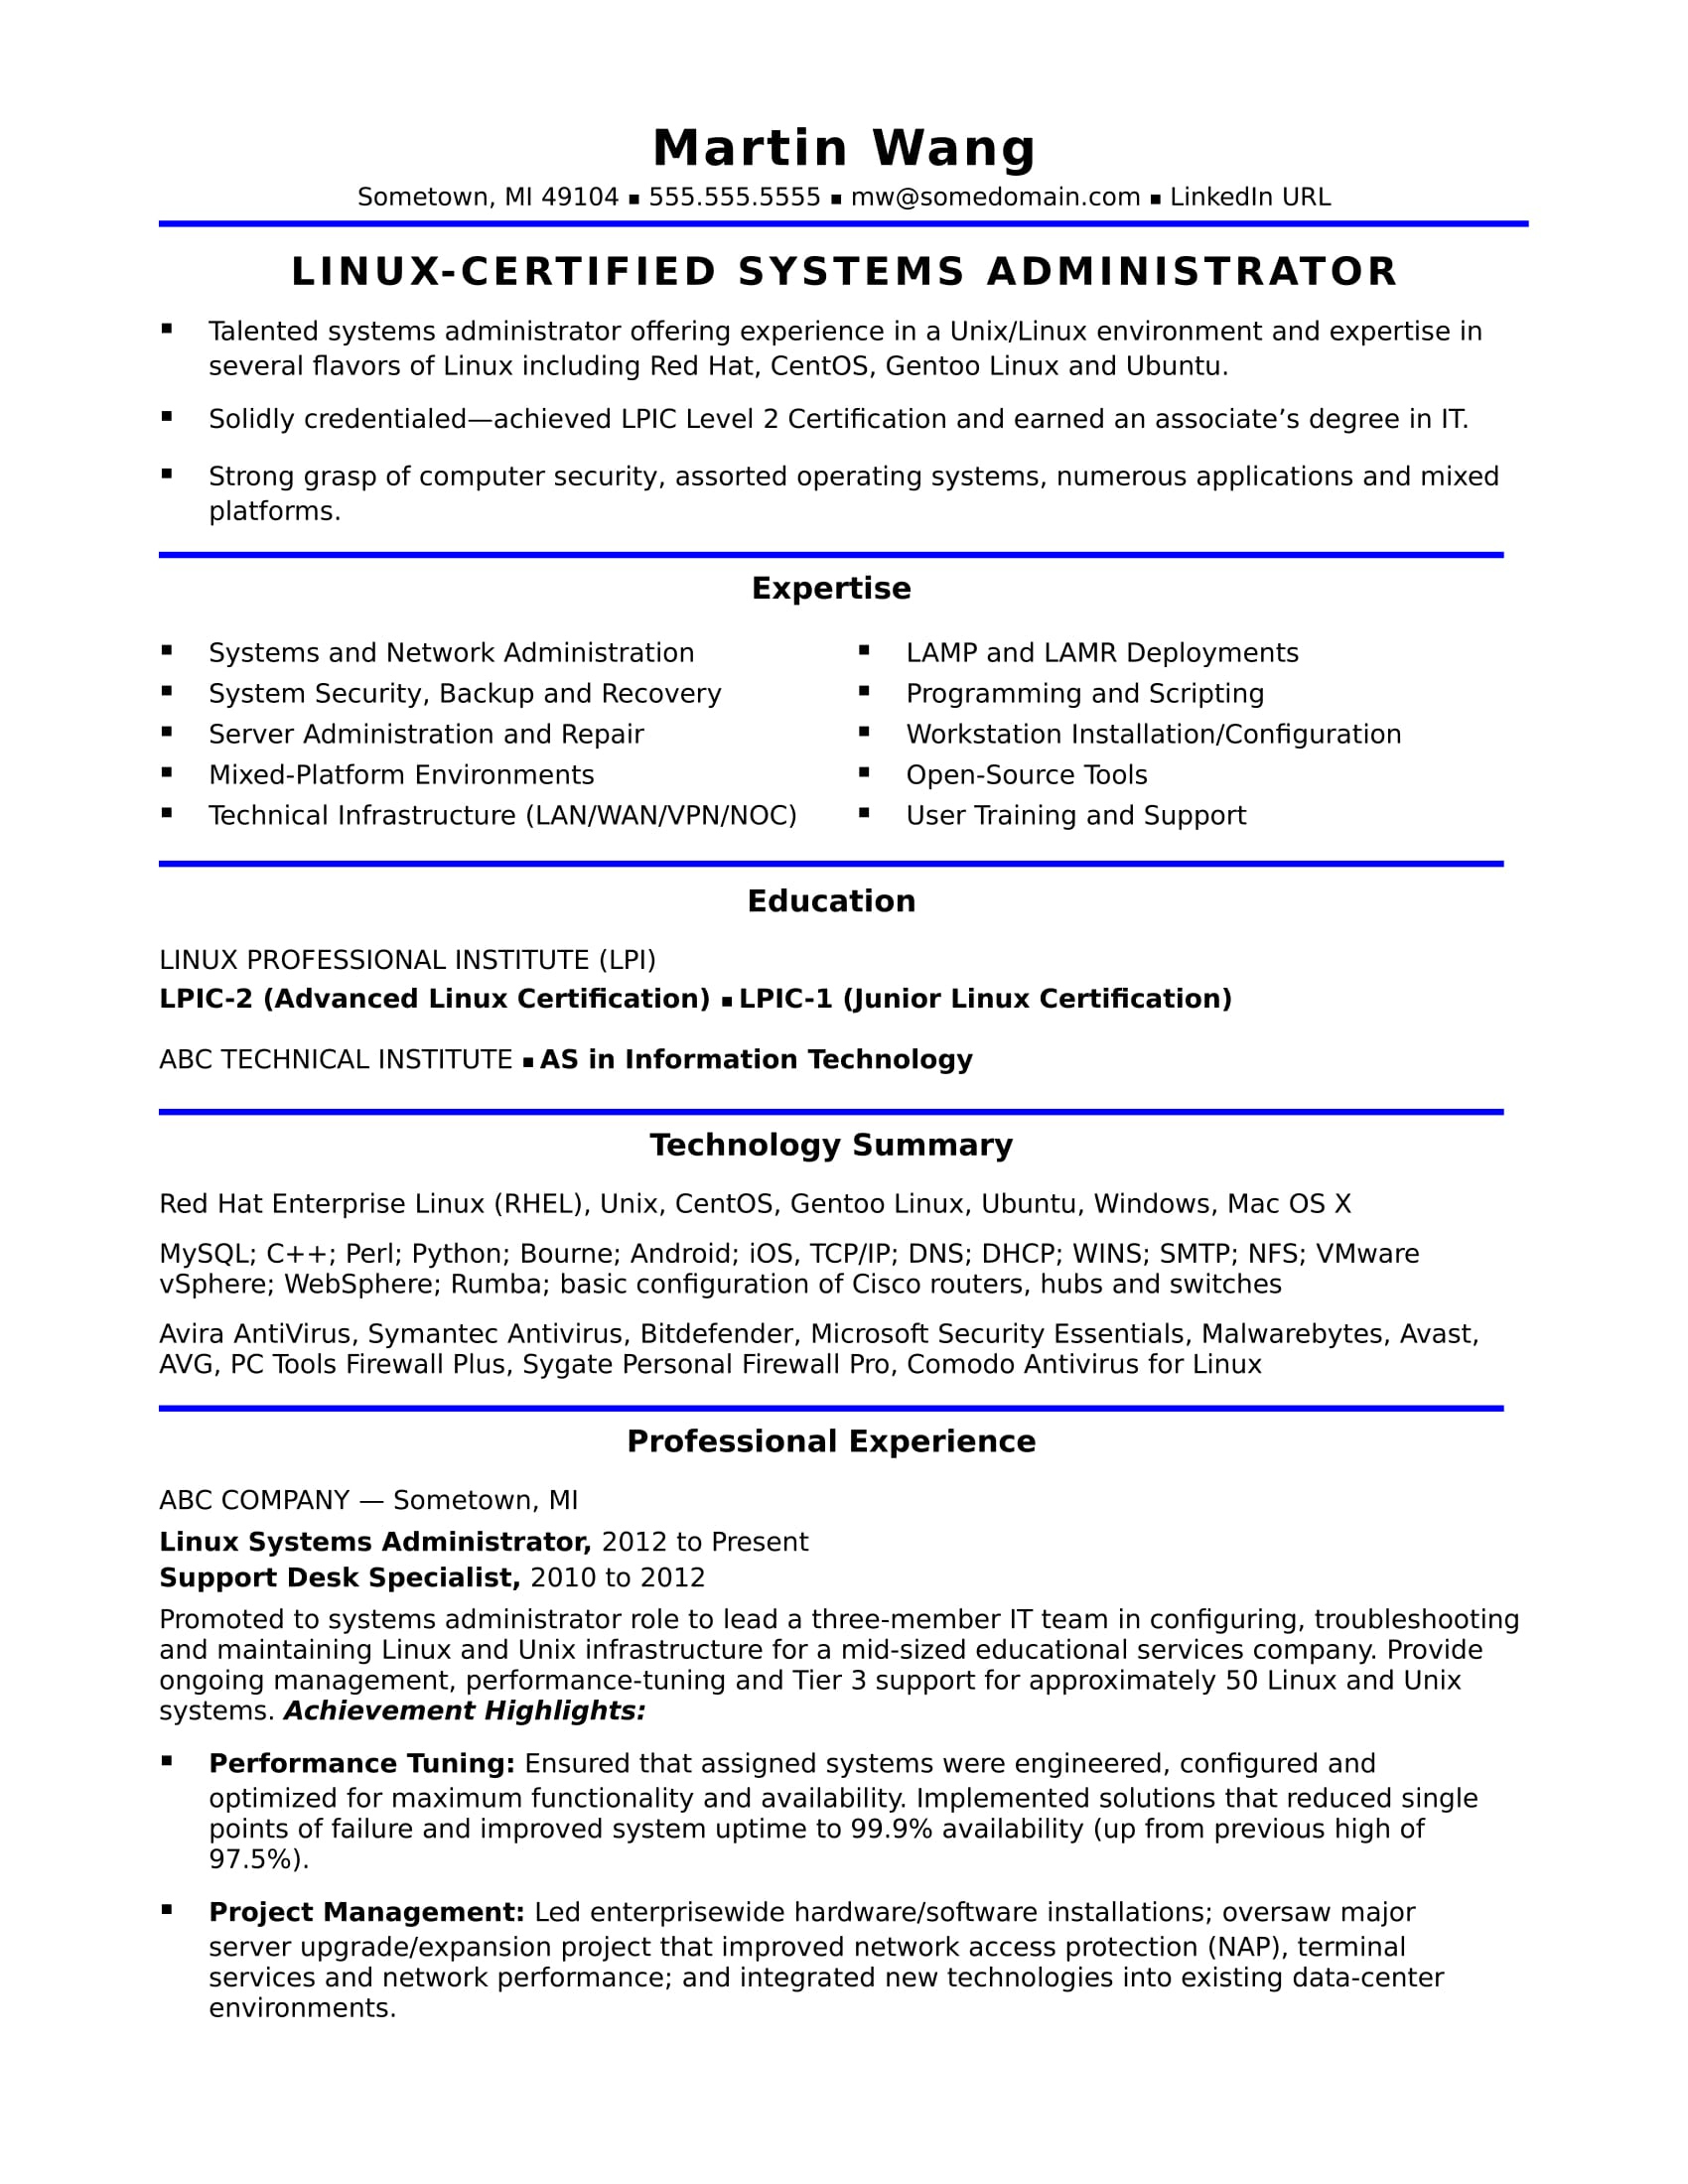 Perfect Sample Resume For A Midlevel Systems Administrator